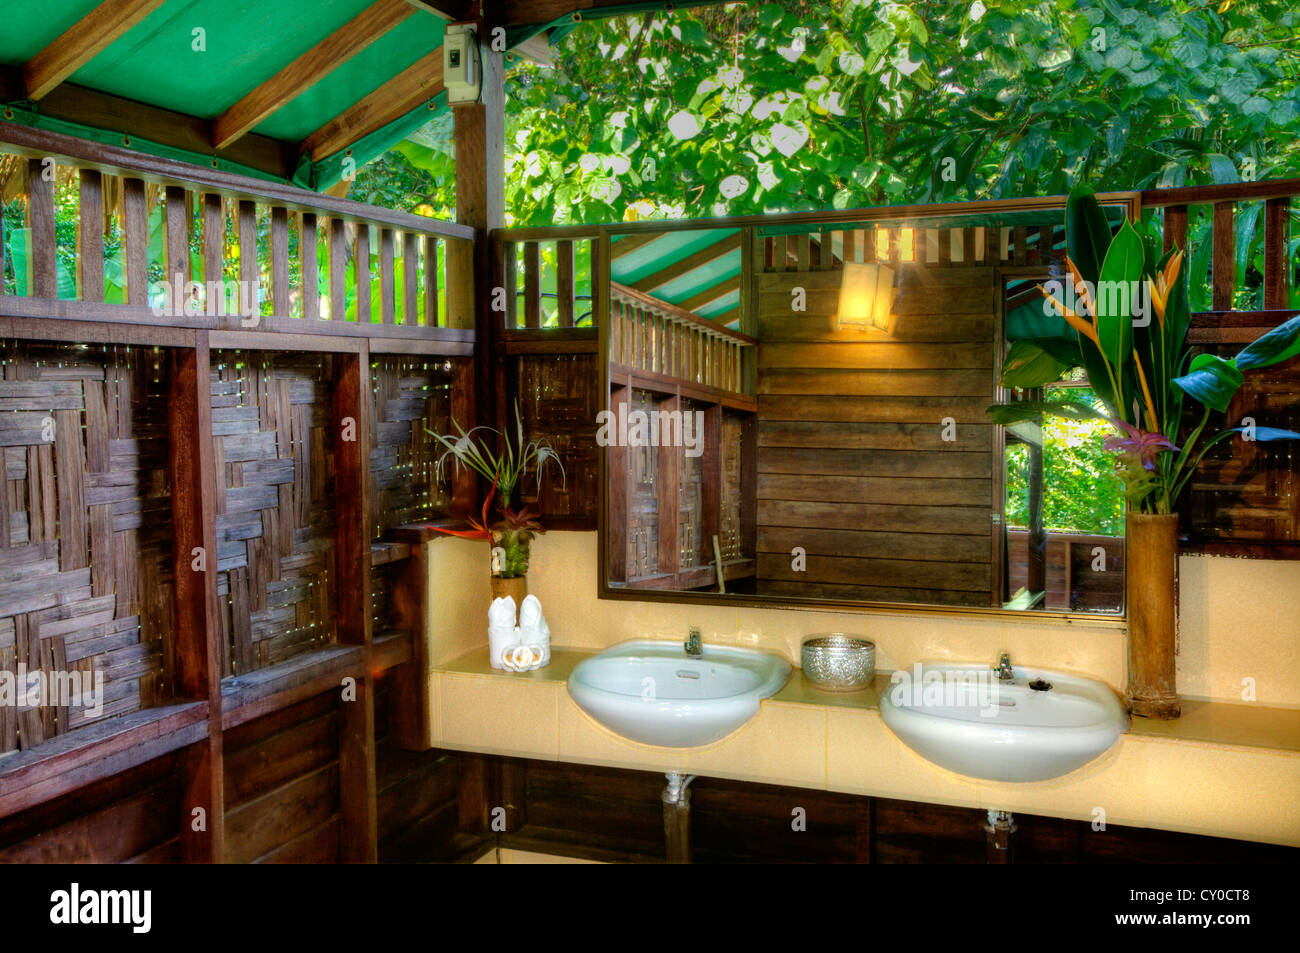 Tree house bathroom at our jungle house a lodge in the for Jungle bathroom ideas